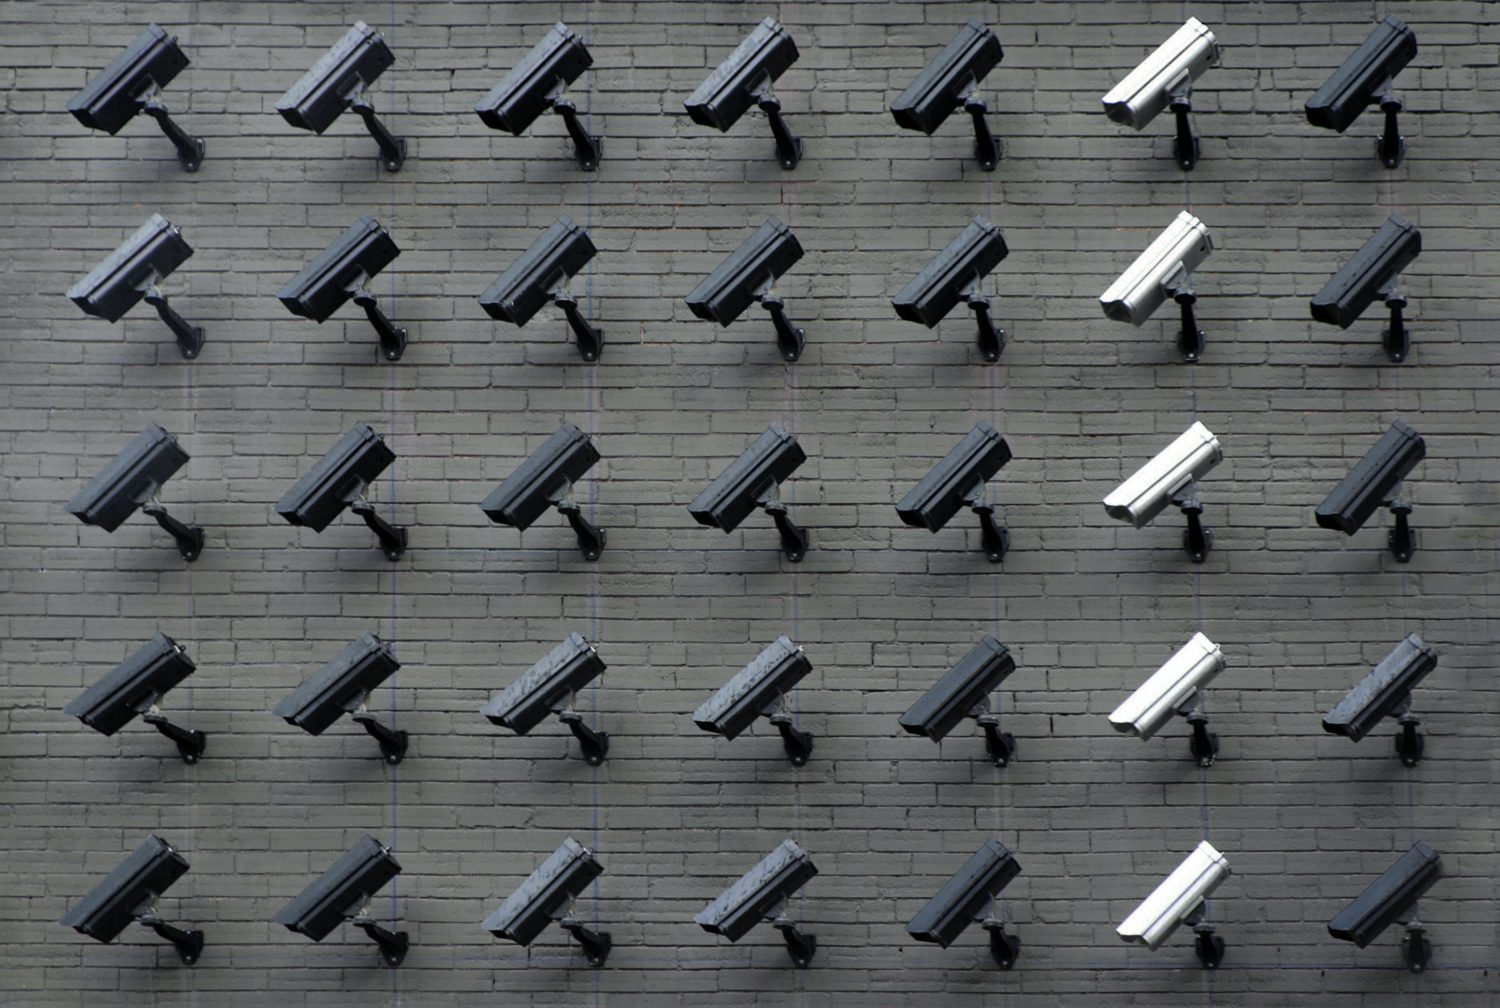 A brick wall of black and white surveillance cameras pointing down.